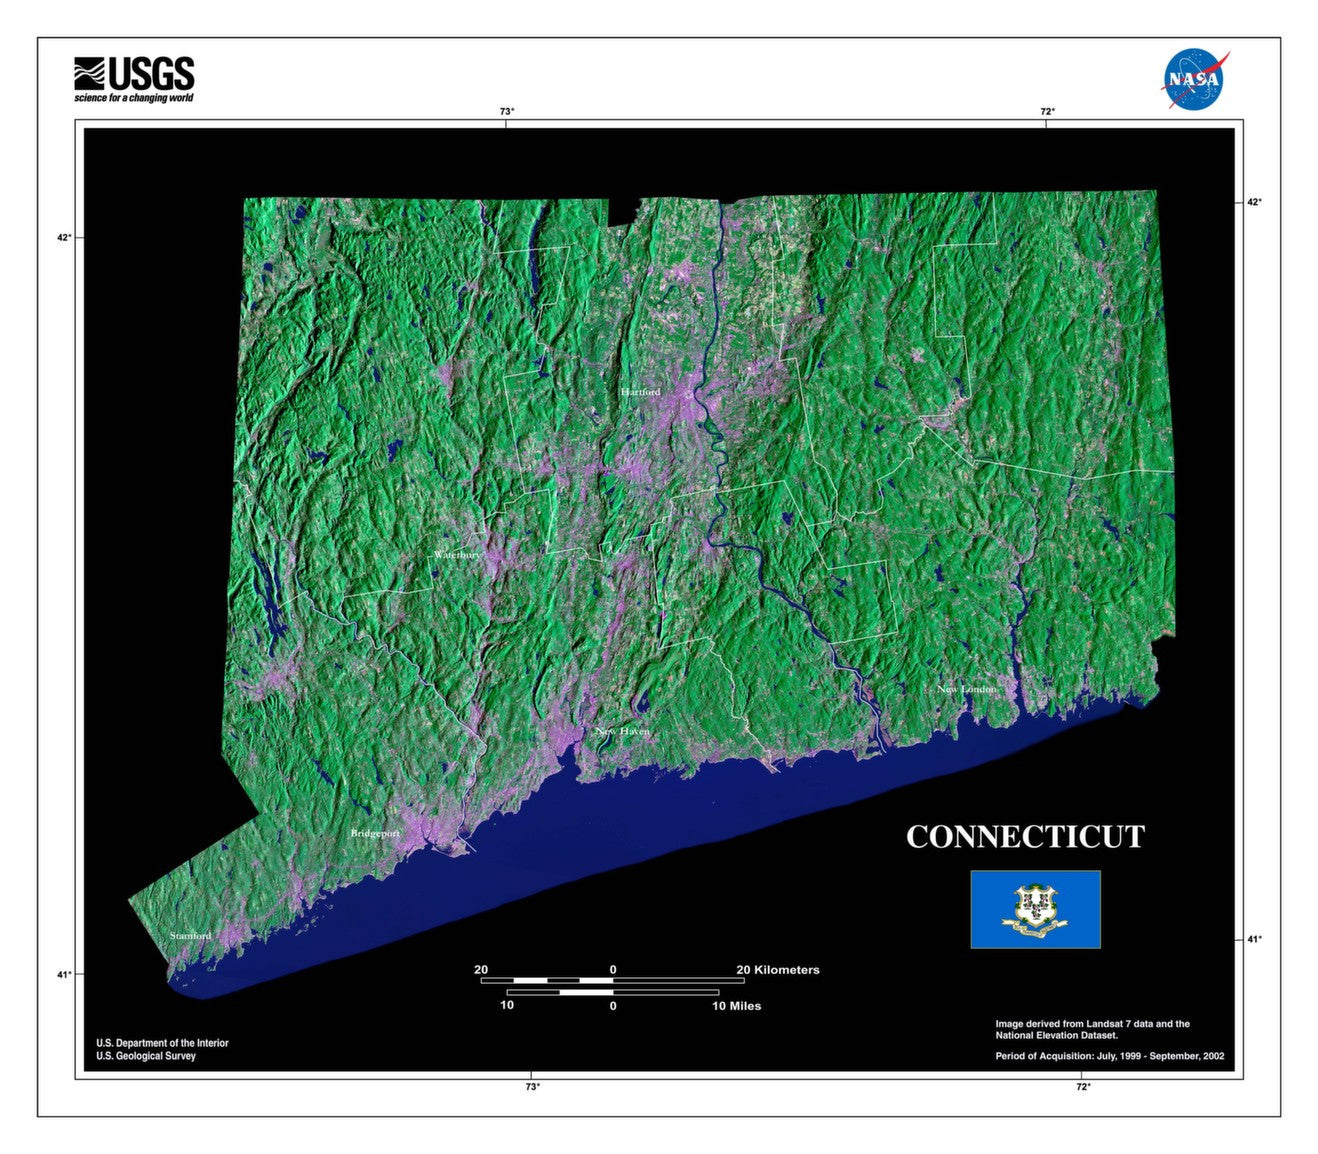 Connecticut Satellite Imagery State Map Poster - TerraPrints.com